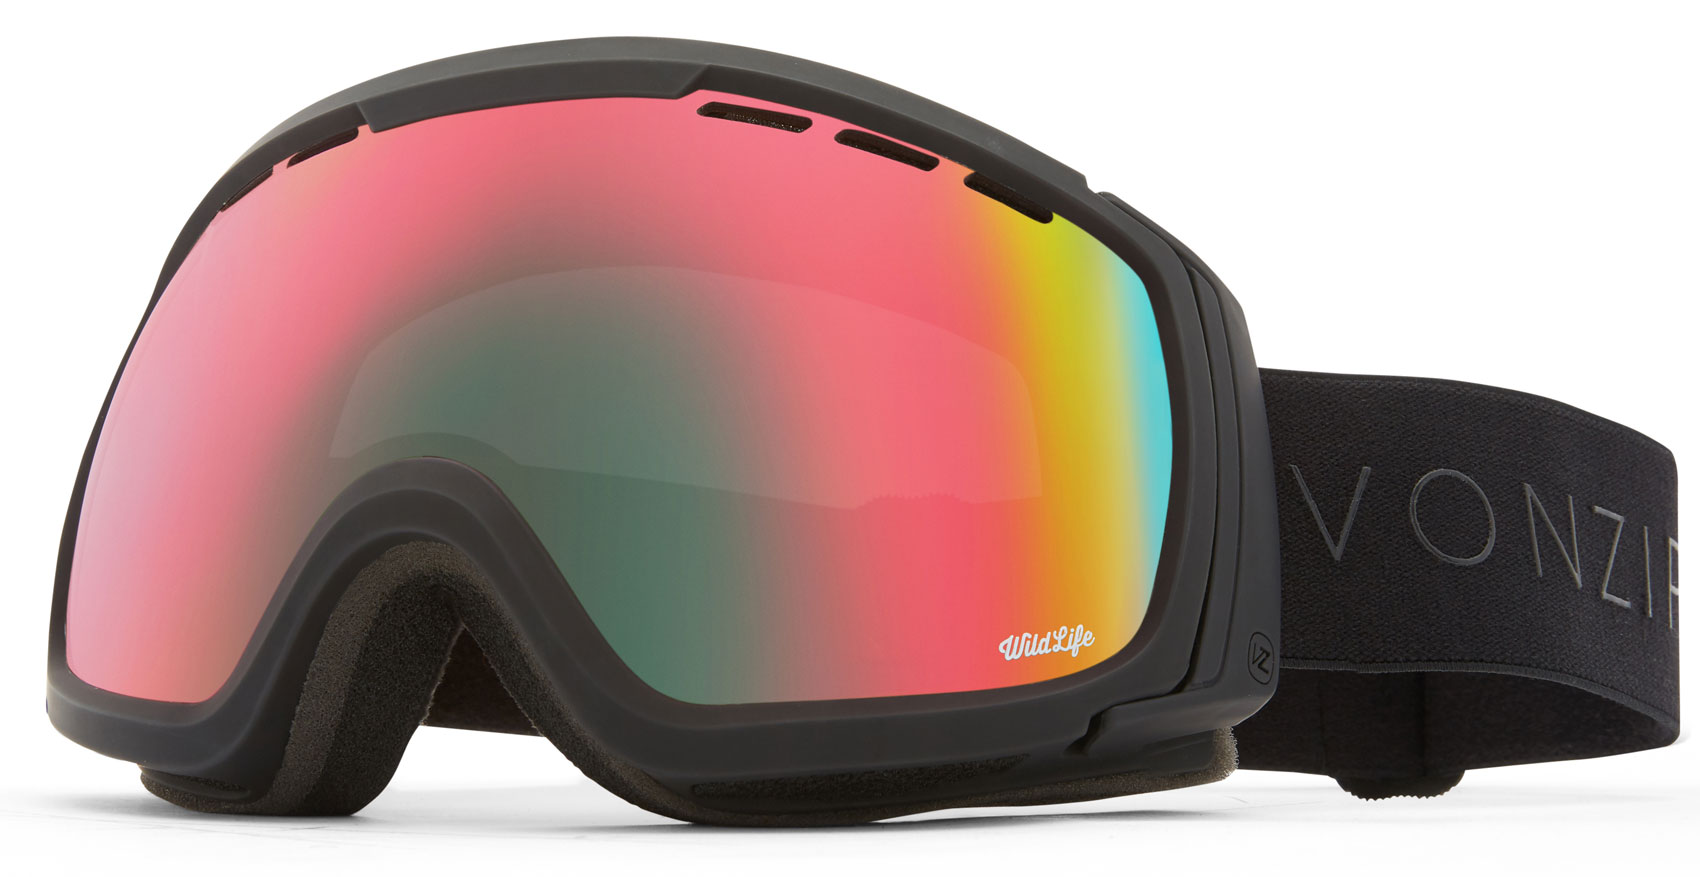 25548693d22 VonZipper Feenom NLS Goggles 2019 Black Satin Wildlife + Yellow ...